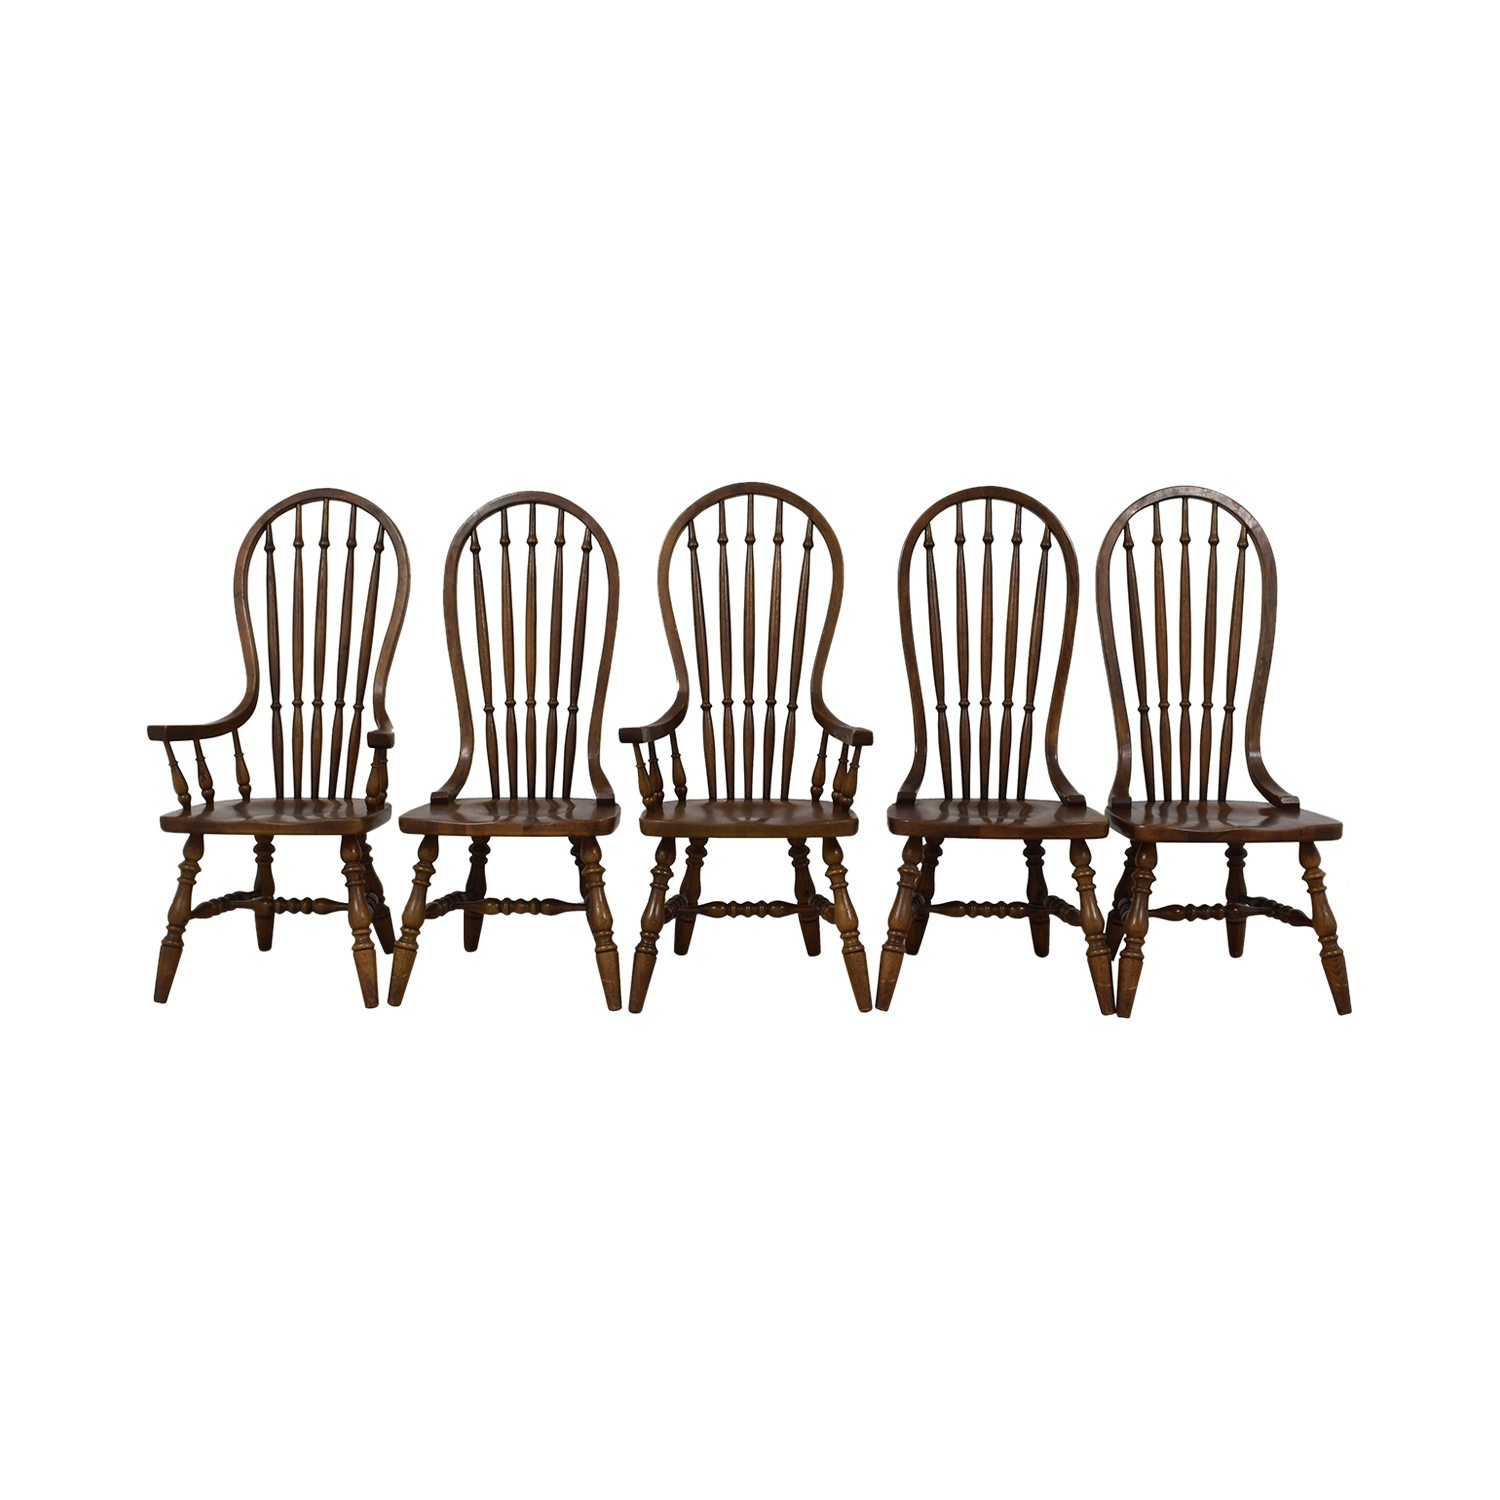 [%90% Off – Antique Oak Spindle Dining Chairs / Chairs Regarding Newest Second Hand Oak Dining Chairs|Second Hand Oak Dining Chairs Within Famous 90% Off – Antique Oak Spindle Dining Chairs / Chairs|Preferred Second Hand Oak Dining Chairs Inside 90% Off – Antique Oak Spindle Dining Chairs / Chairs|Trendy 90% Off – Antique Oak Spindle Dining Chairs / Chairs For Second Hand Oak Dining Chairs%] (View 3 of 25)